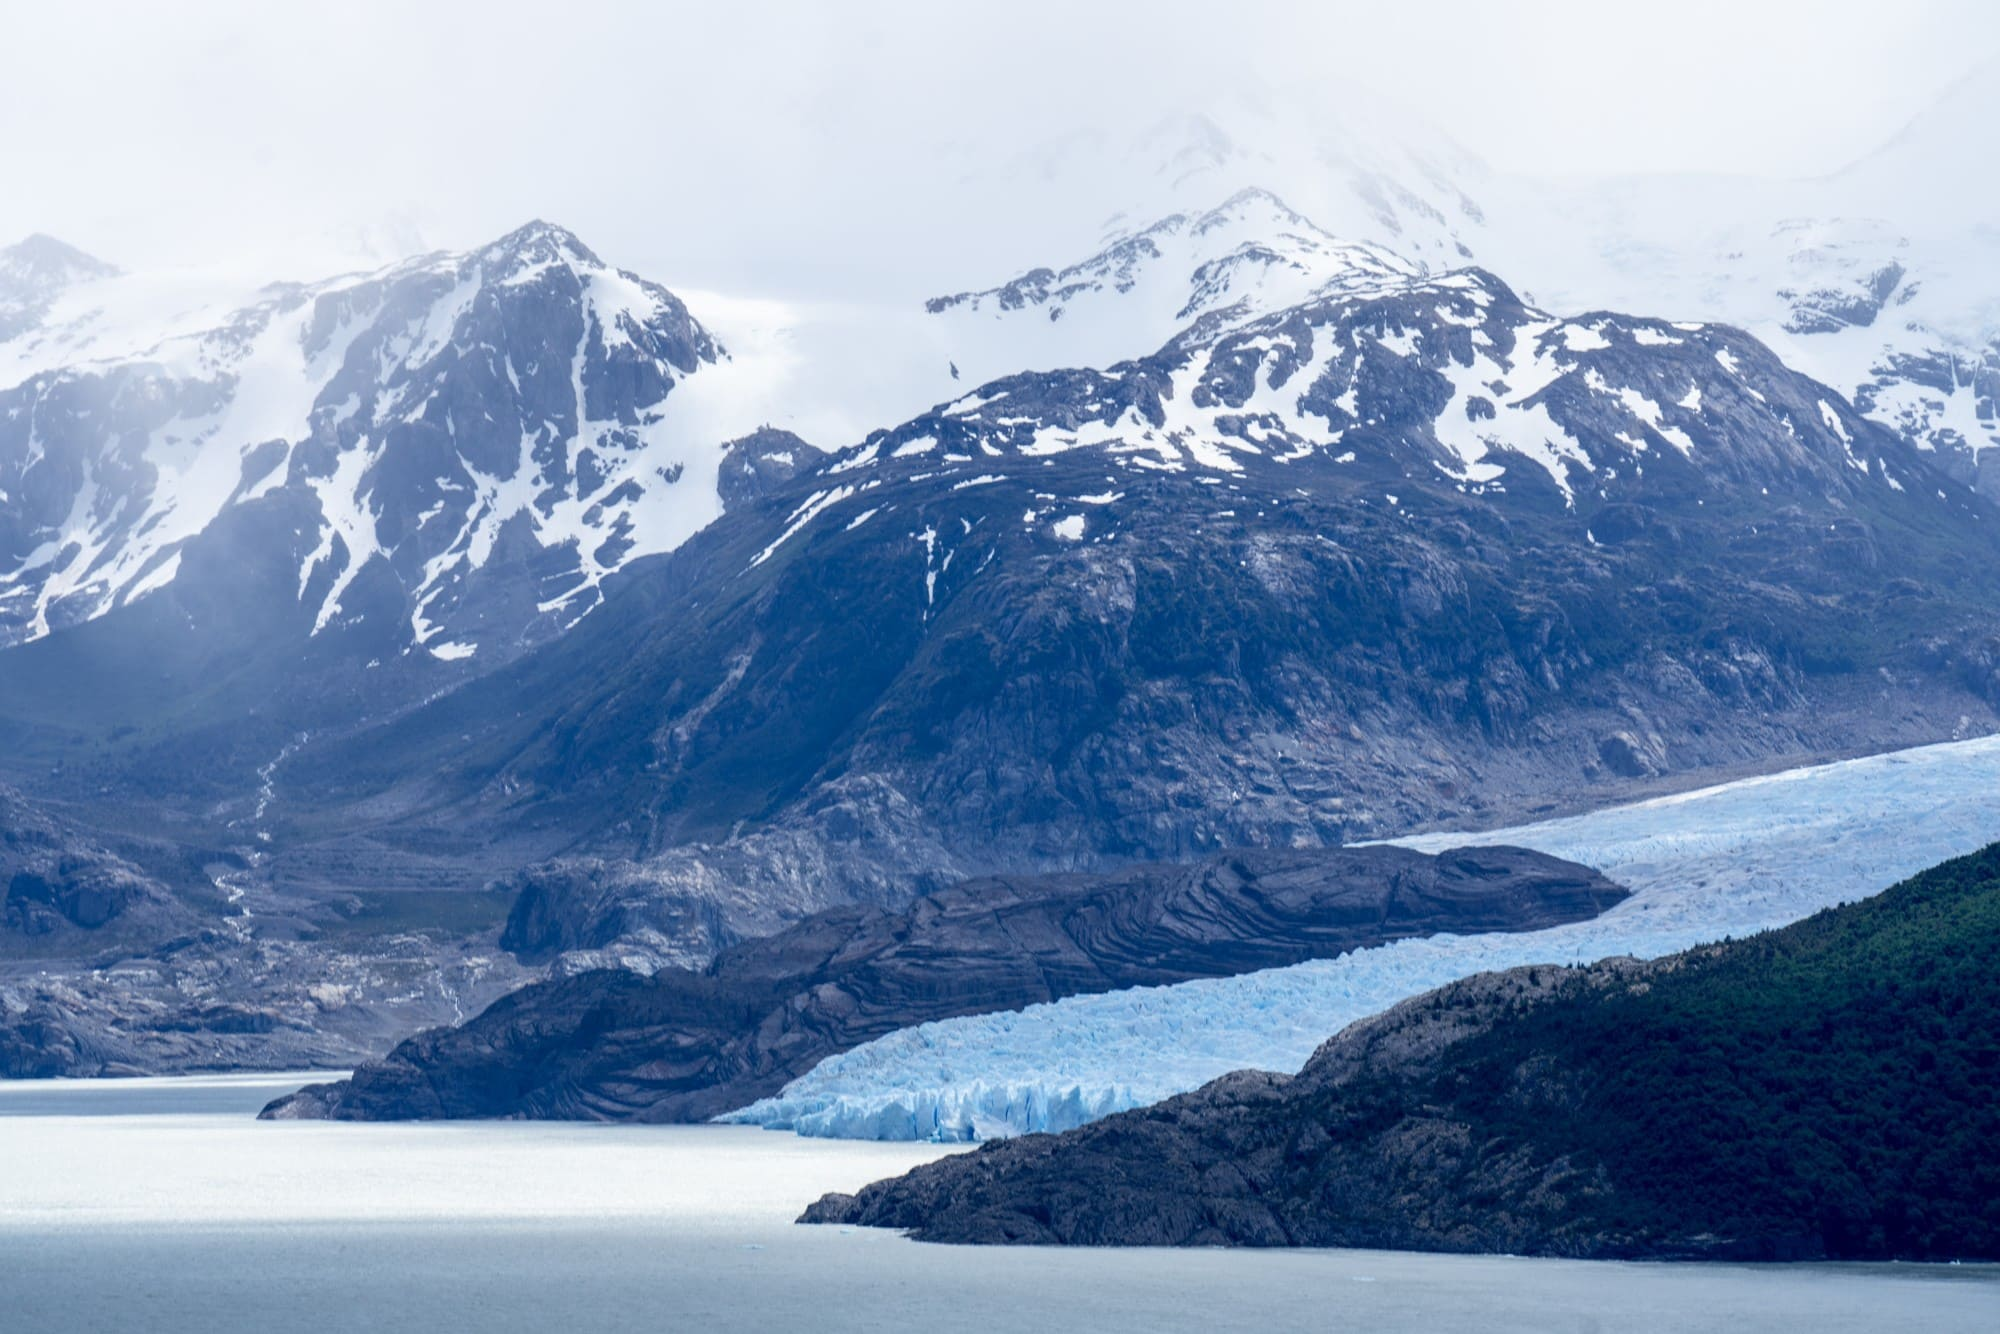 Grey Glacier // Want to hike the W Trek in Torres Del Paine? We answer all of your questions about itineraries, gear, campsites, and whether a guide is necessary.